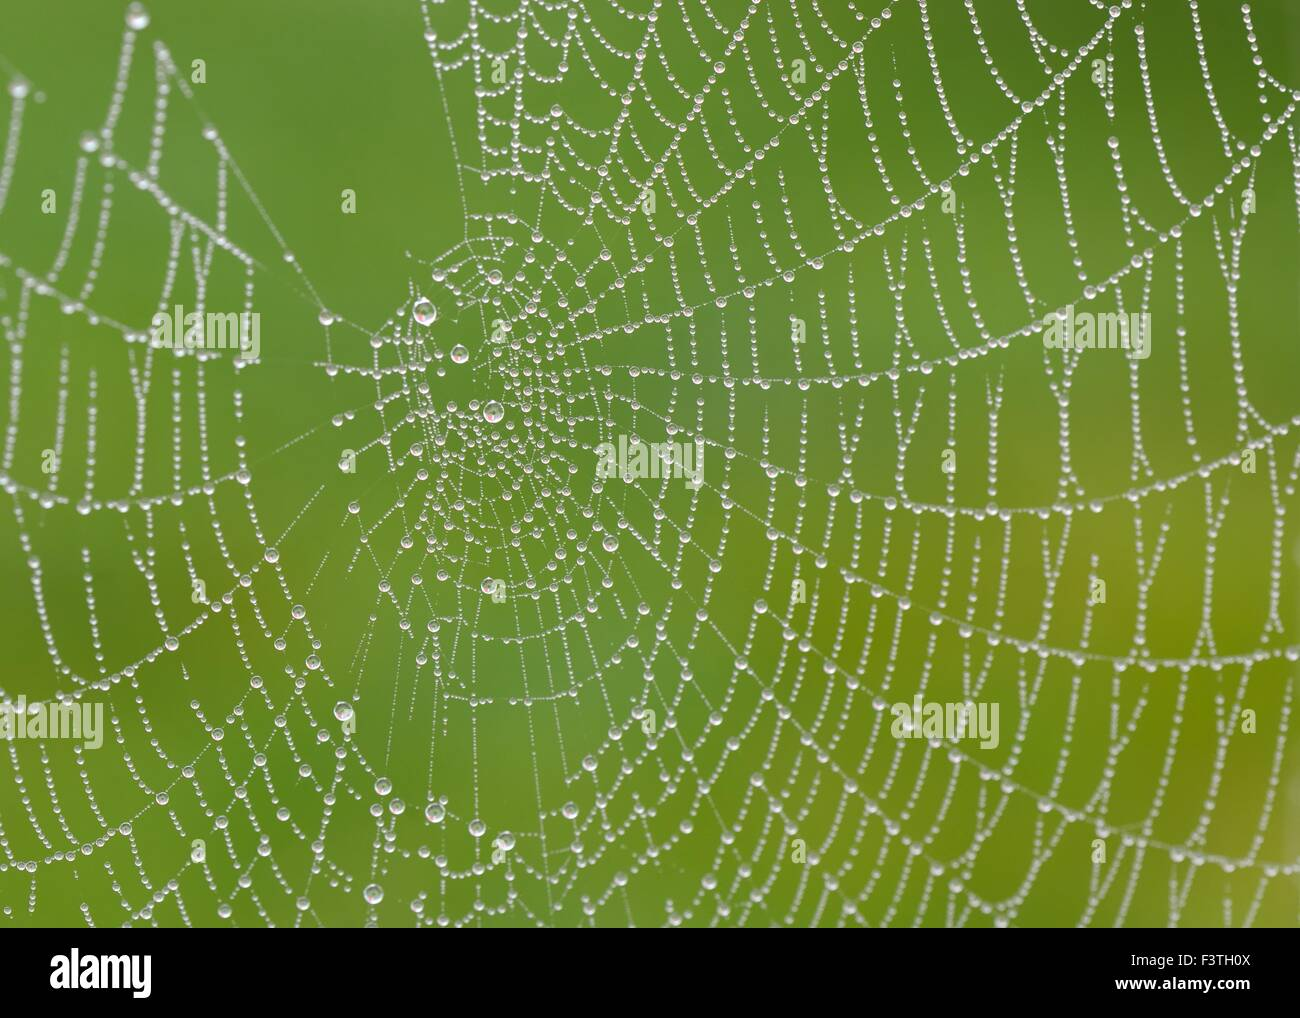 Heavy early morning moisture in the air settles on this spiders web - Stock Image